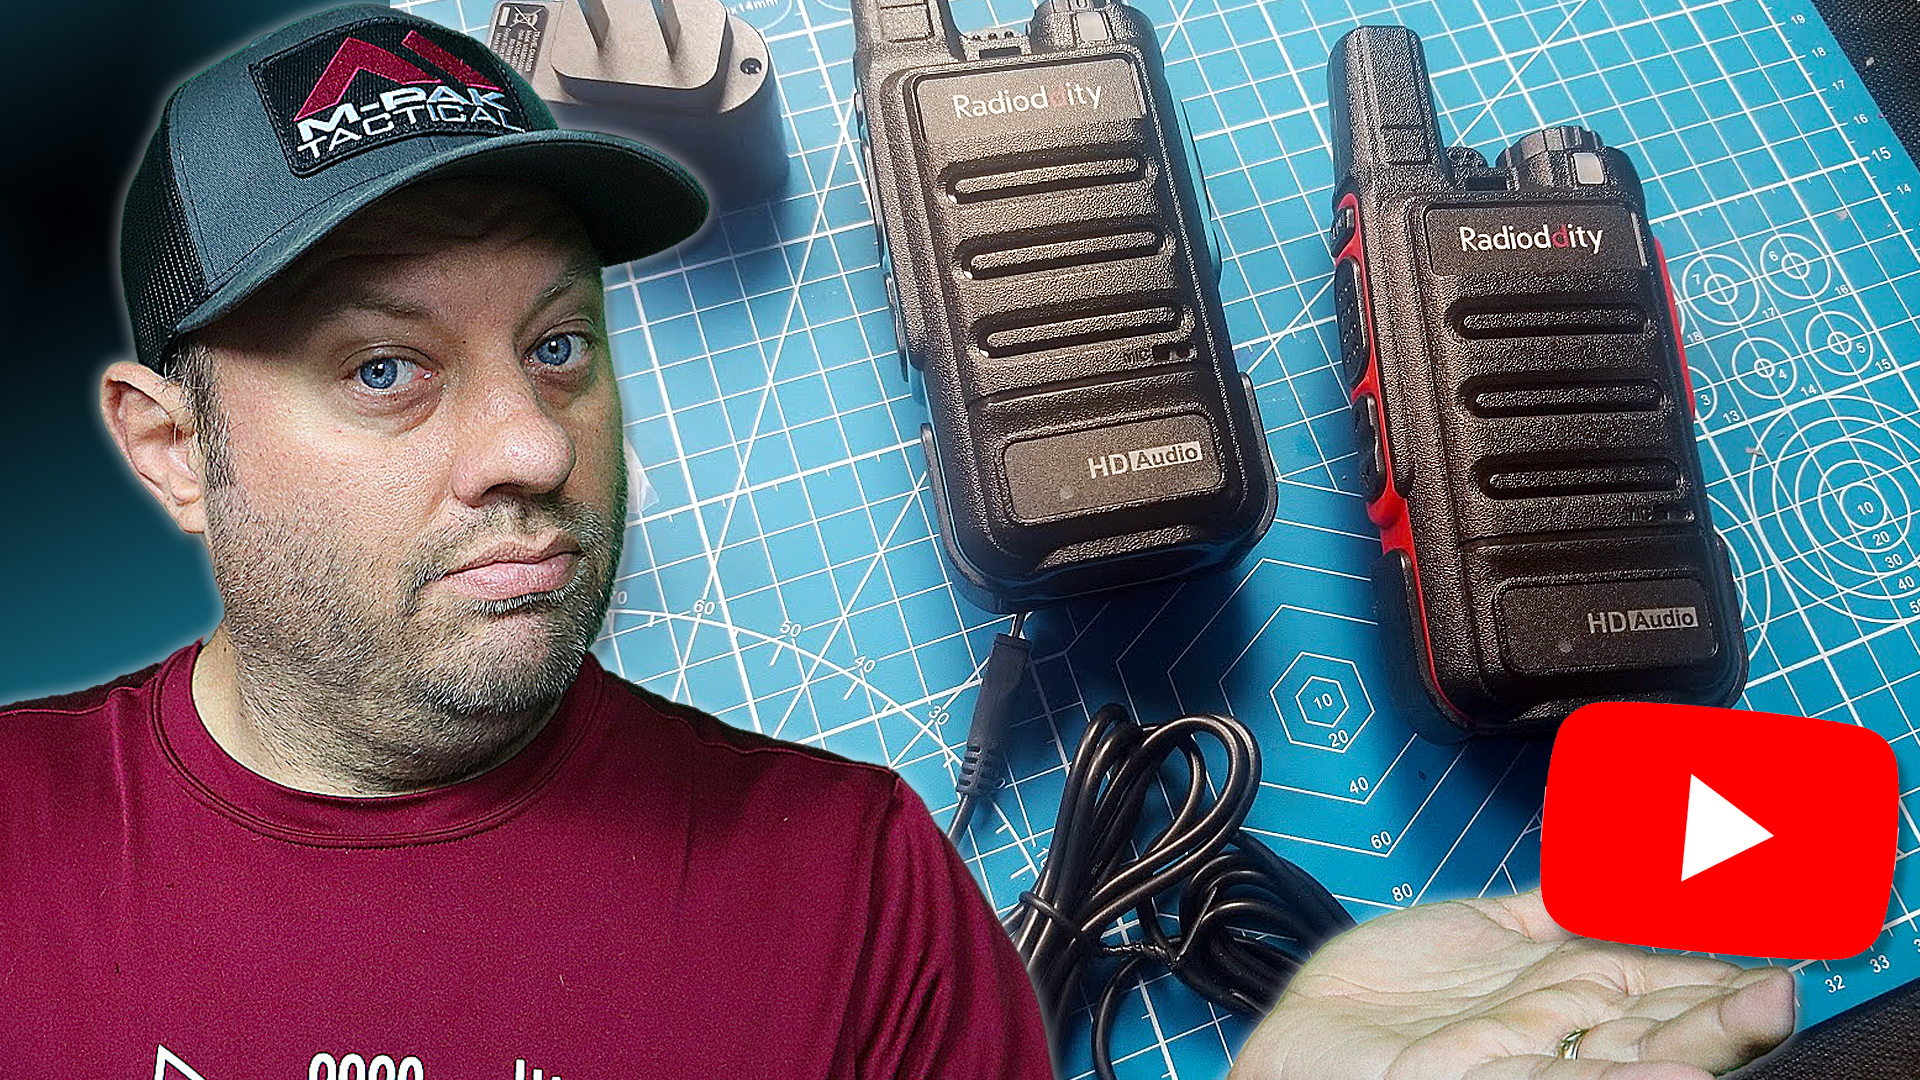 Episode 536: Radioddity FS-N1 Noise-Canceling FRS/PMR446 Radio with HD Audio